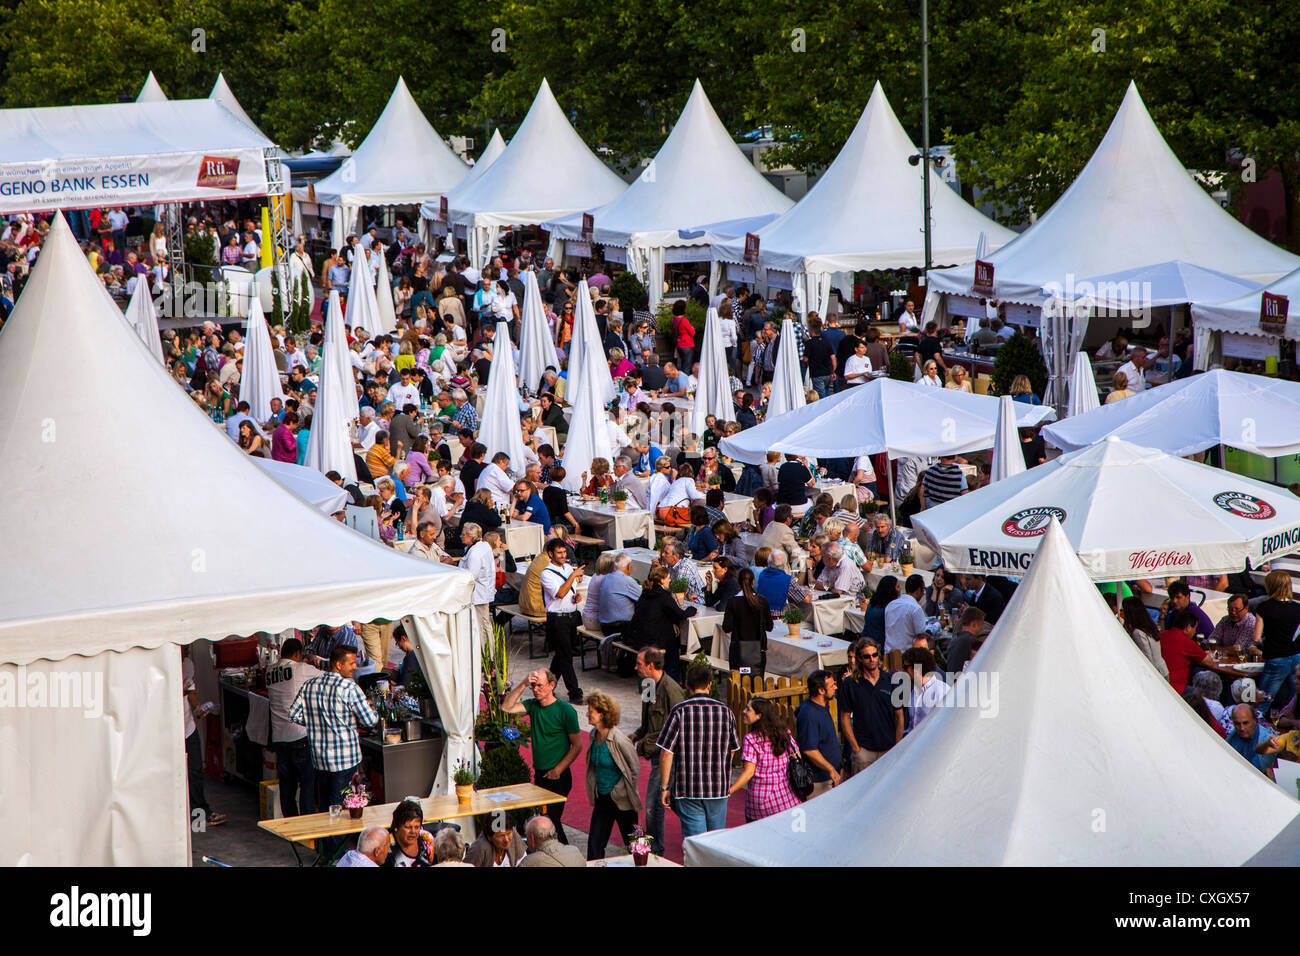 Gorumet tent festival. More than 20 local restaurants offer their best meals to the public. Essen, Germany - Stock Image